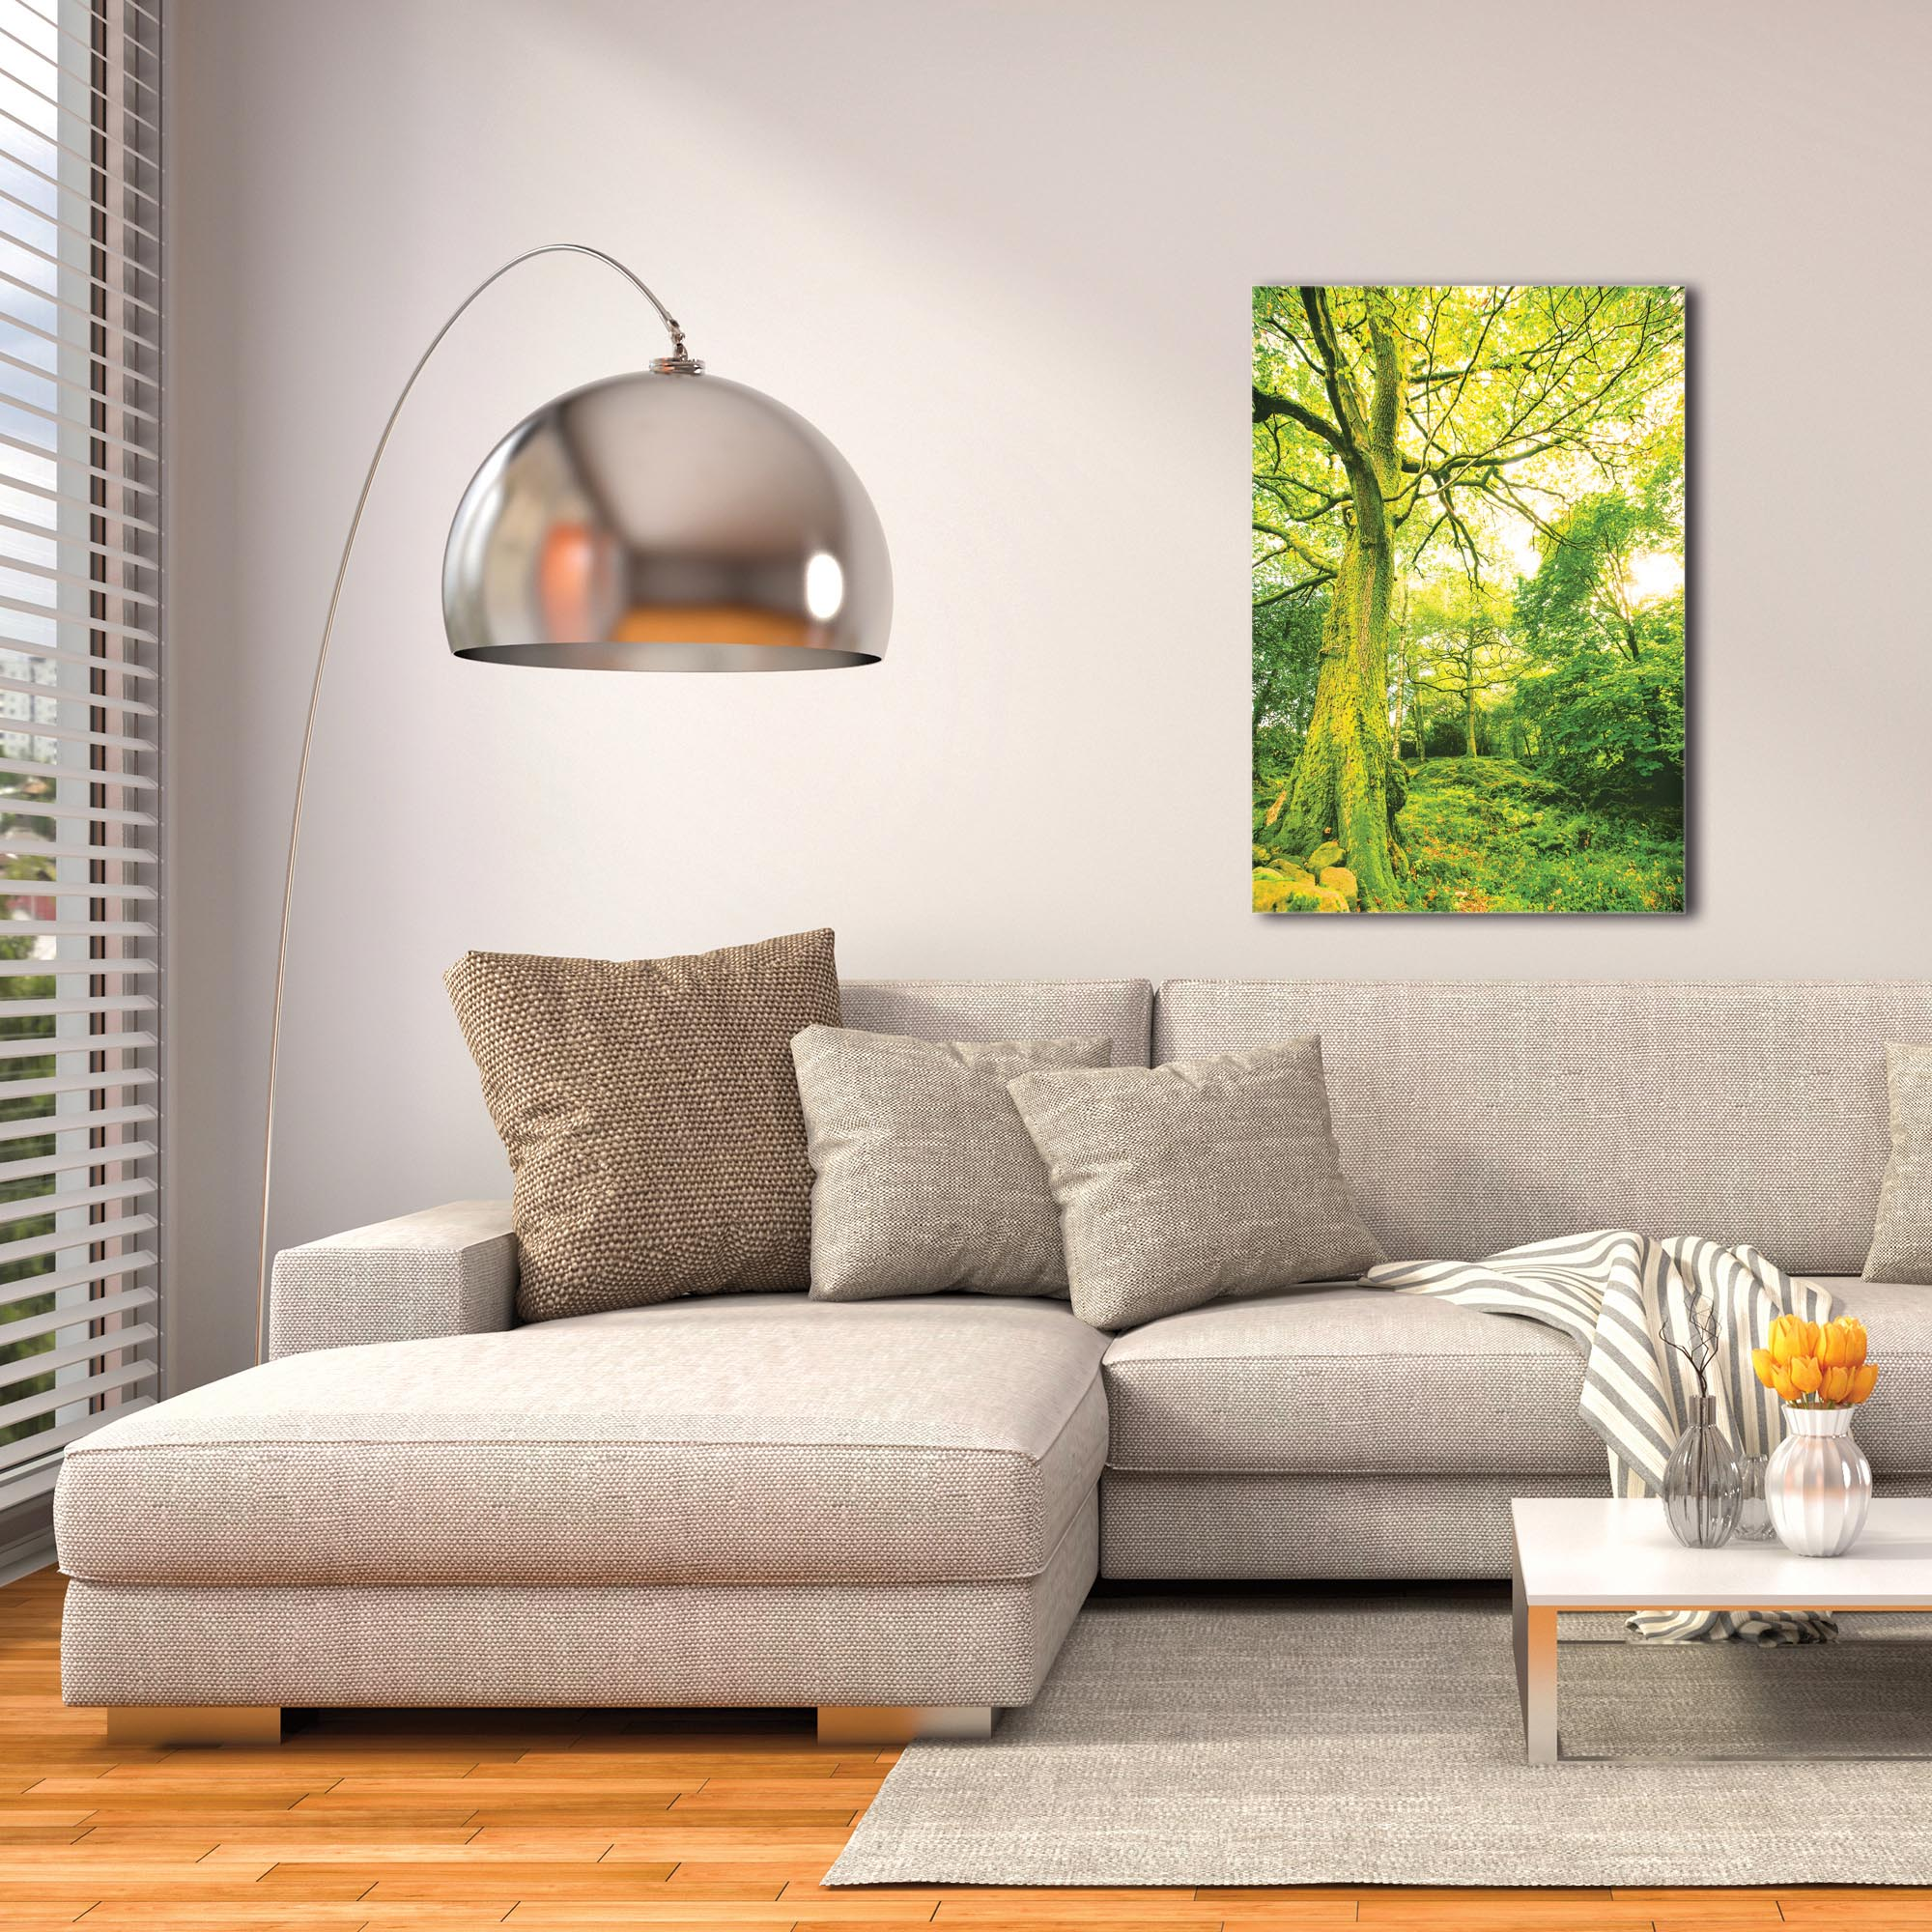 Landscape Photography 'Mossy Grove' - Forest Scene Art on Metal or Plexiglass - Image 3